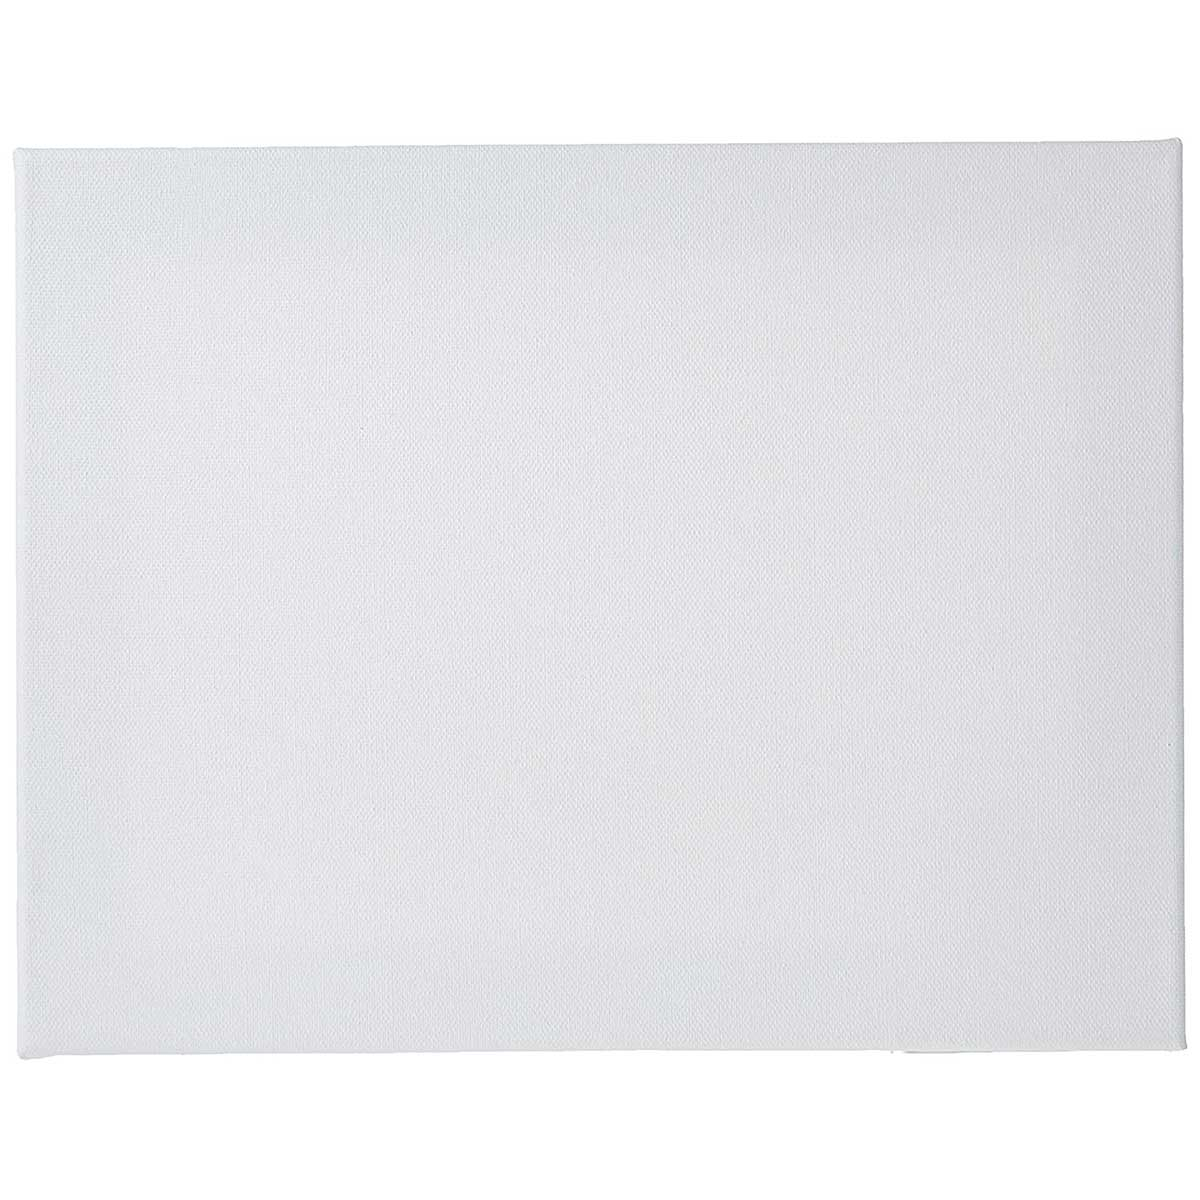 Stretched Canvas Board (12X14 Inch)